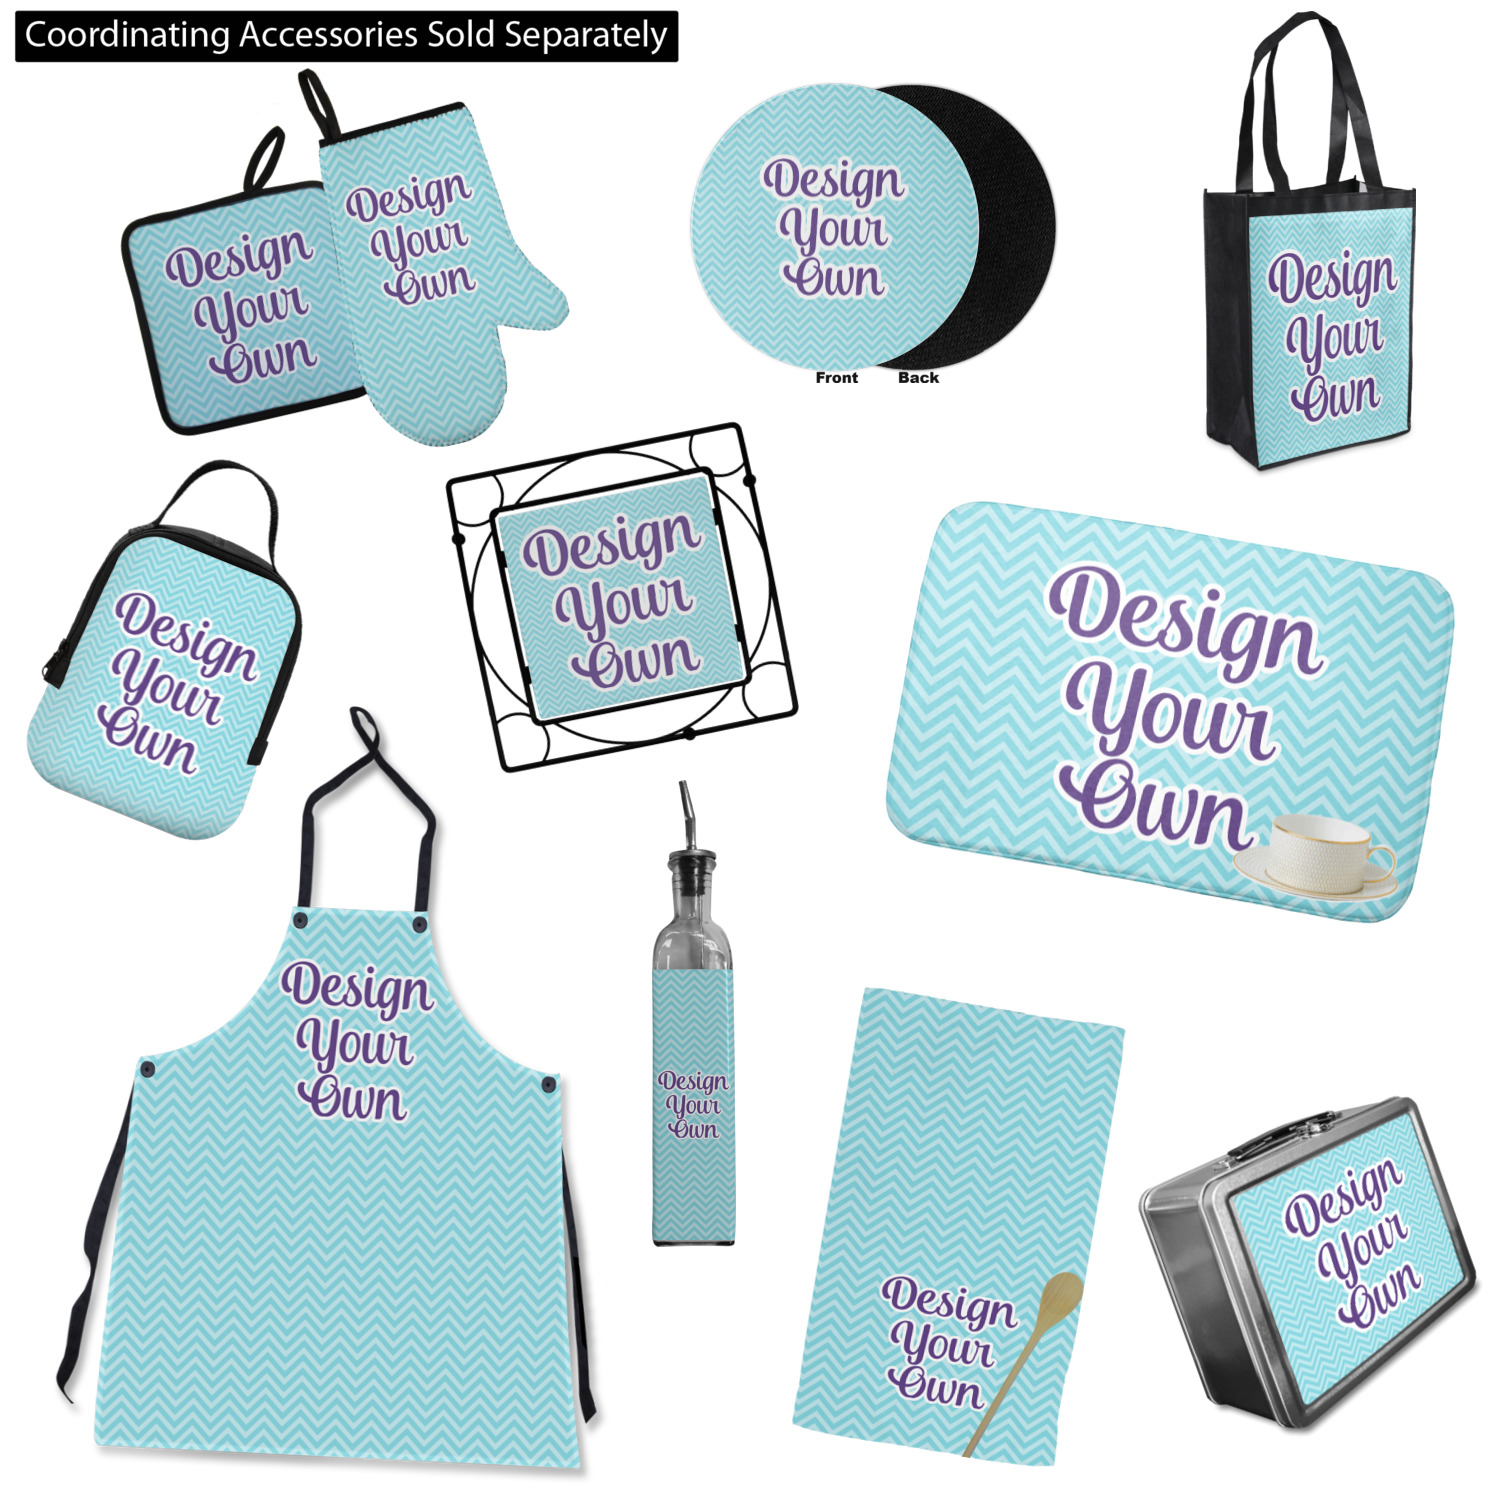 5dd3b6c08eda Design Your Own Personalized Lunch Box